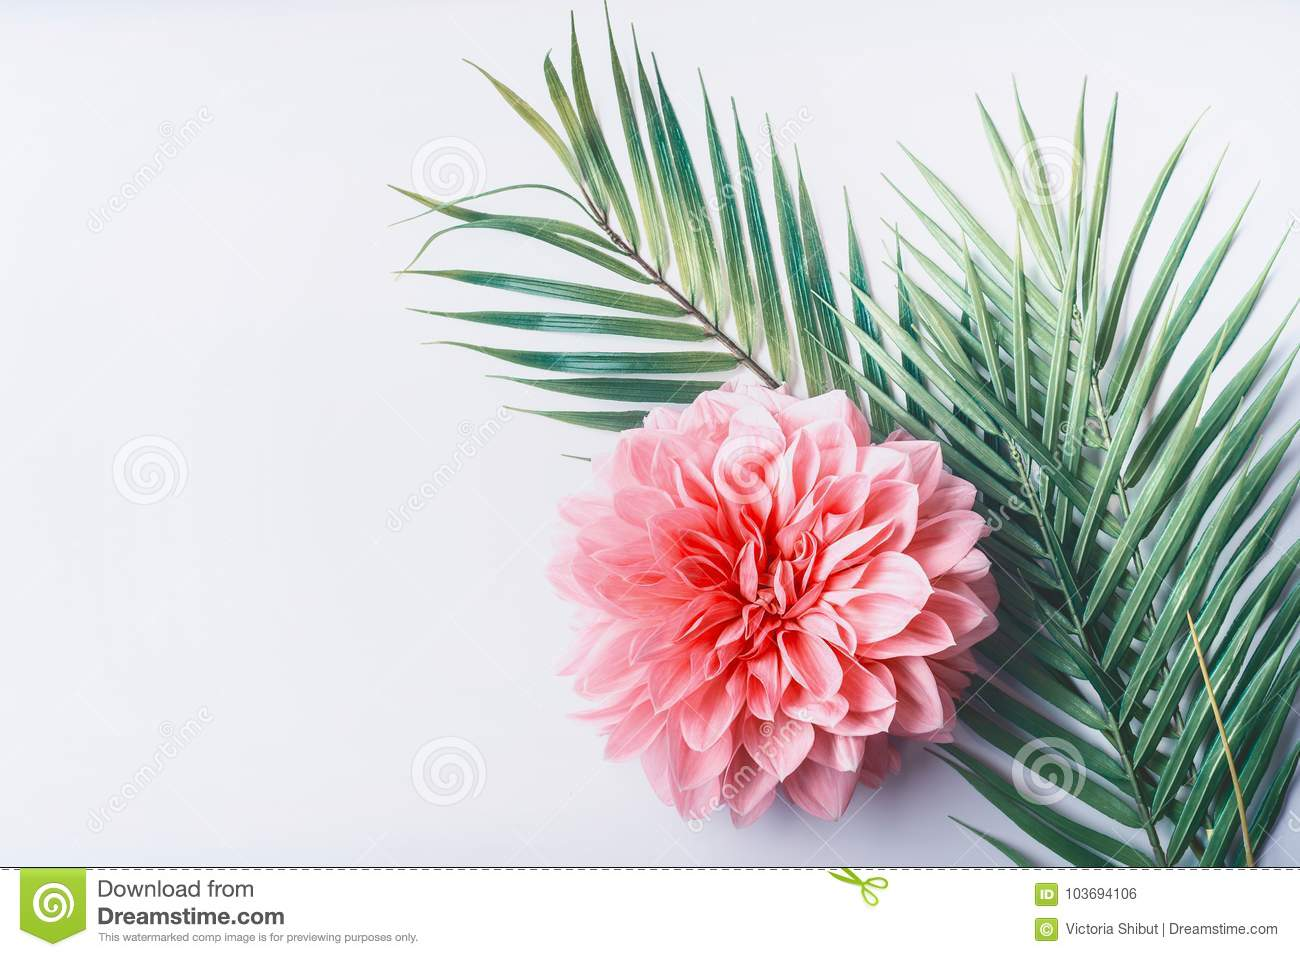 Pastel Pink Flower And Tropical Palm Leaves On White Desktop Background Top View Creative Layout With Copy Space Stock Photo Image Of Natural Layout 103694106 We hope you enjoy our growing collection of hd images to use as a background or home screen for your smartphone or computer. https www dreamstime com pastel pink flower tropical palm leaves white desktop background top view creative layout copy space pastel pink image103694106